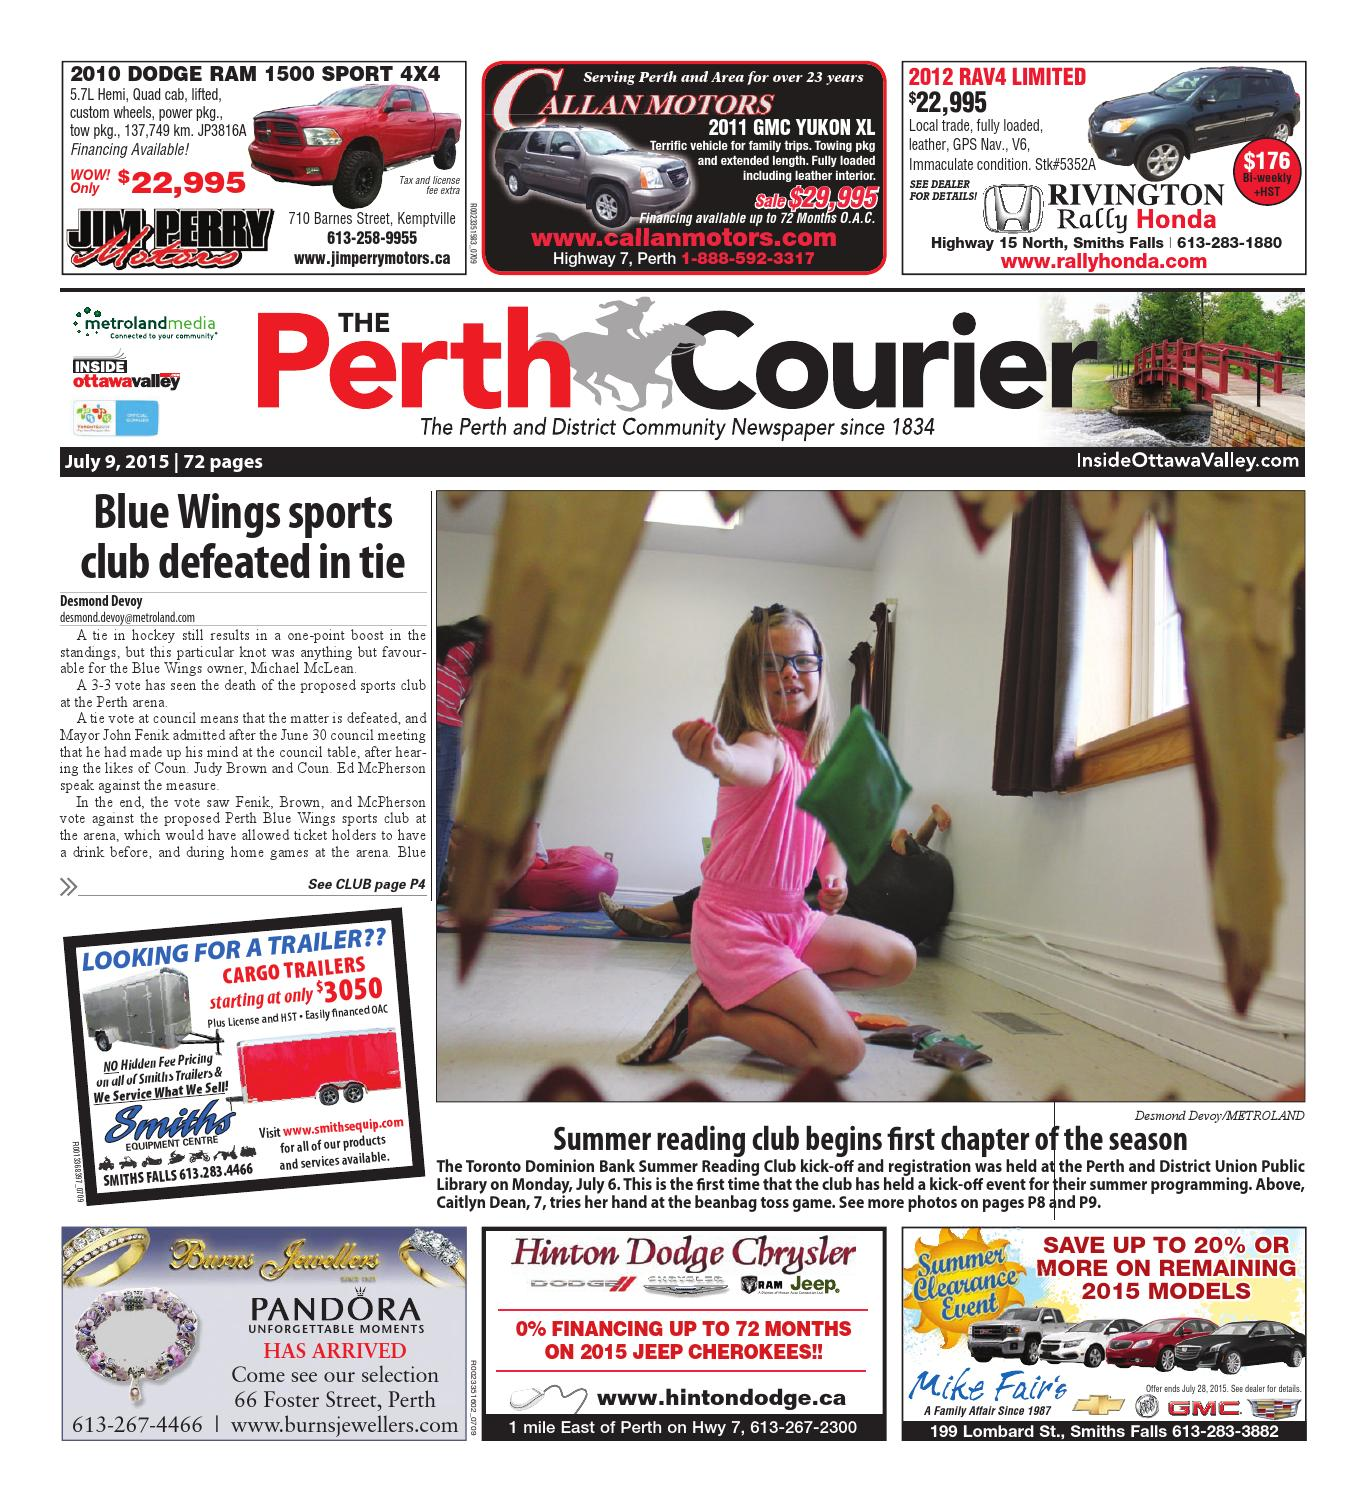 Umbrella Stroller Kijiji Mississauga Perth070915 By Metroland East The Perth Courier Issuu